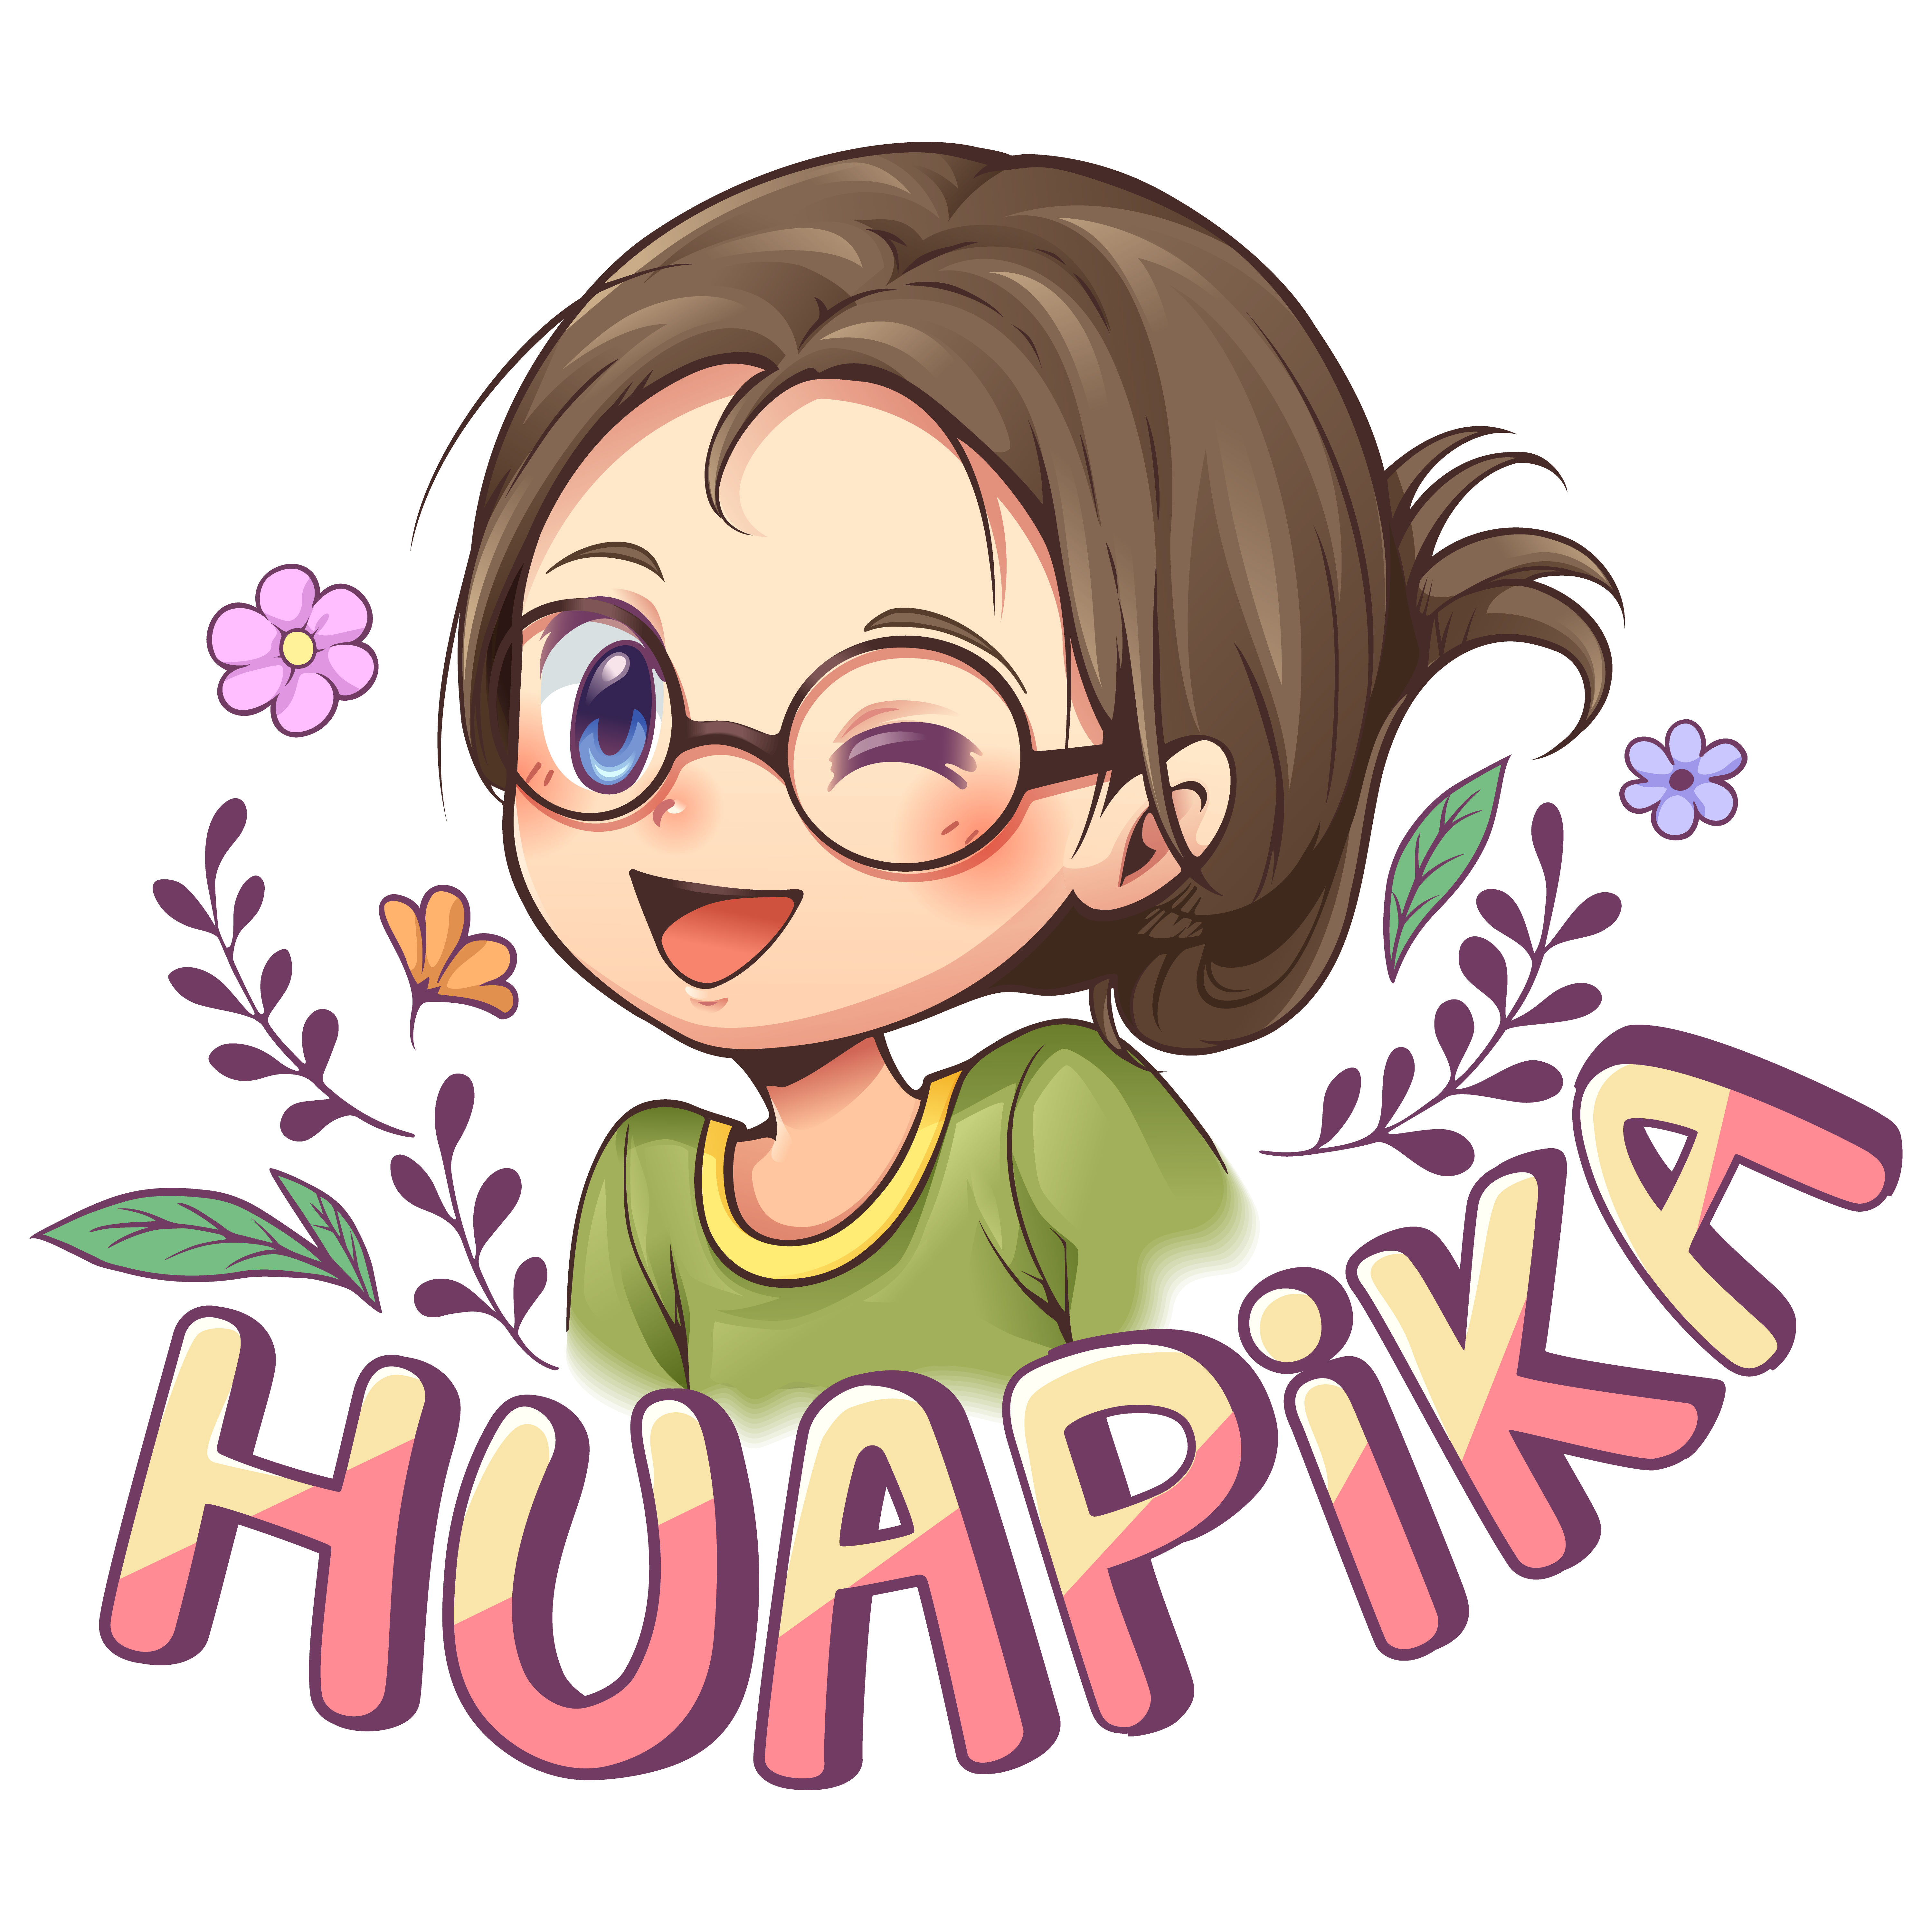 huapika's profile picture